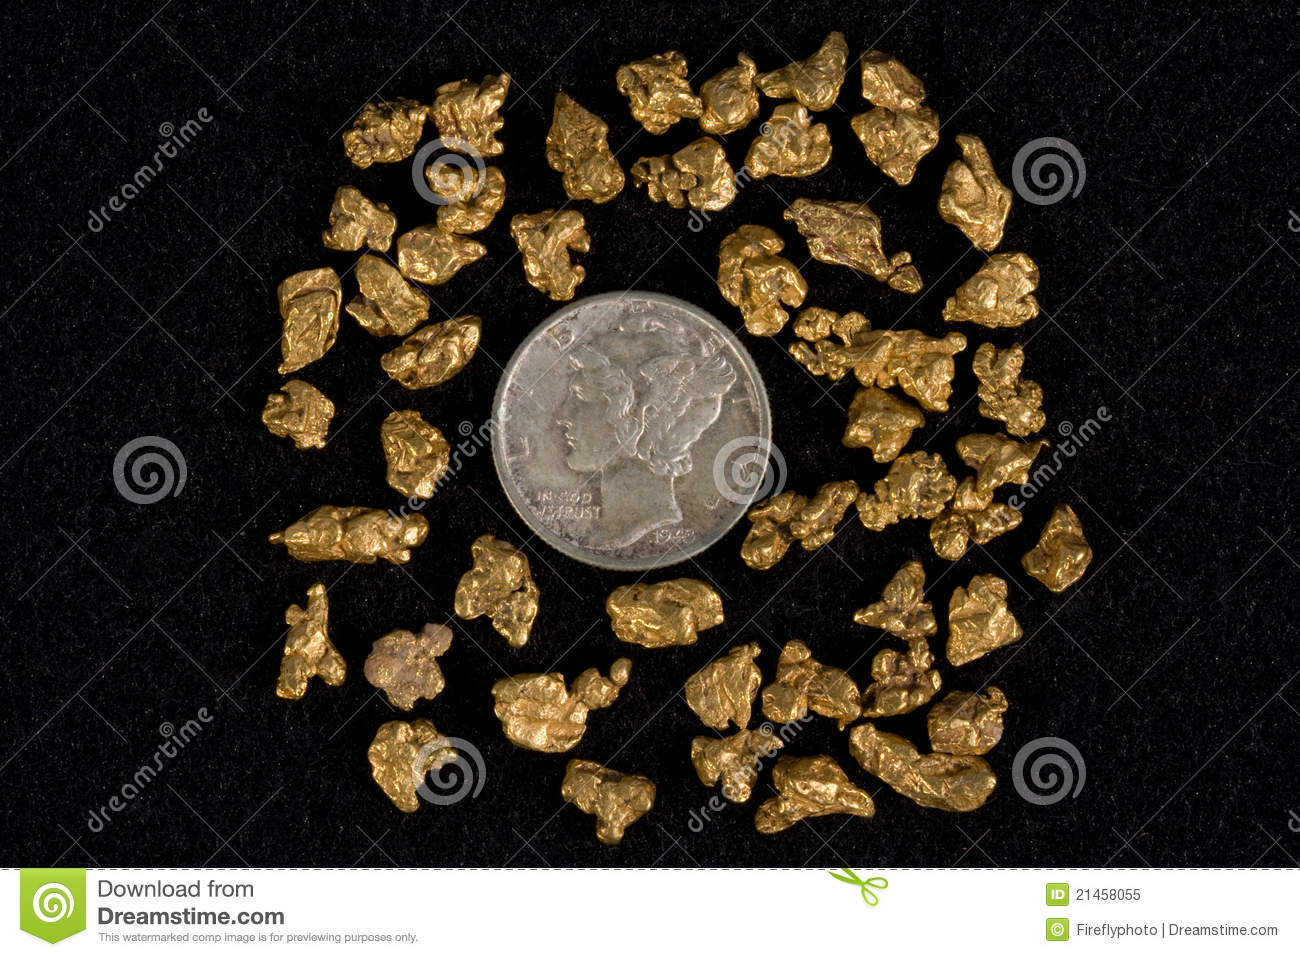 Idaho Placer Gold Nuggets Royalty Free Stock Photo Image